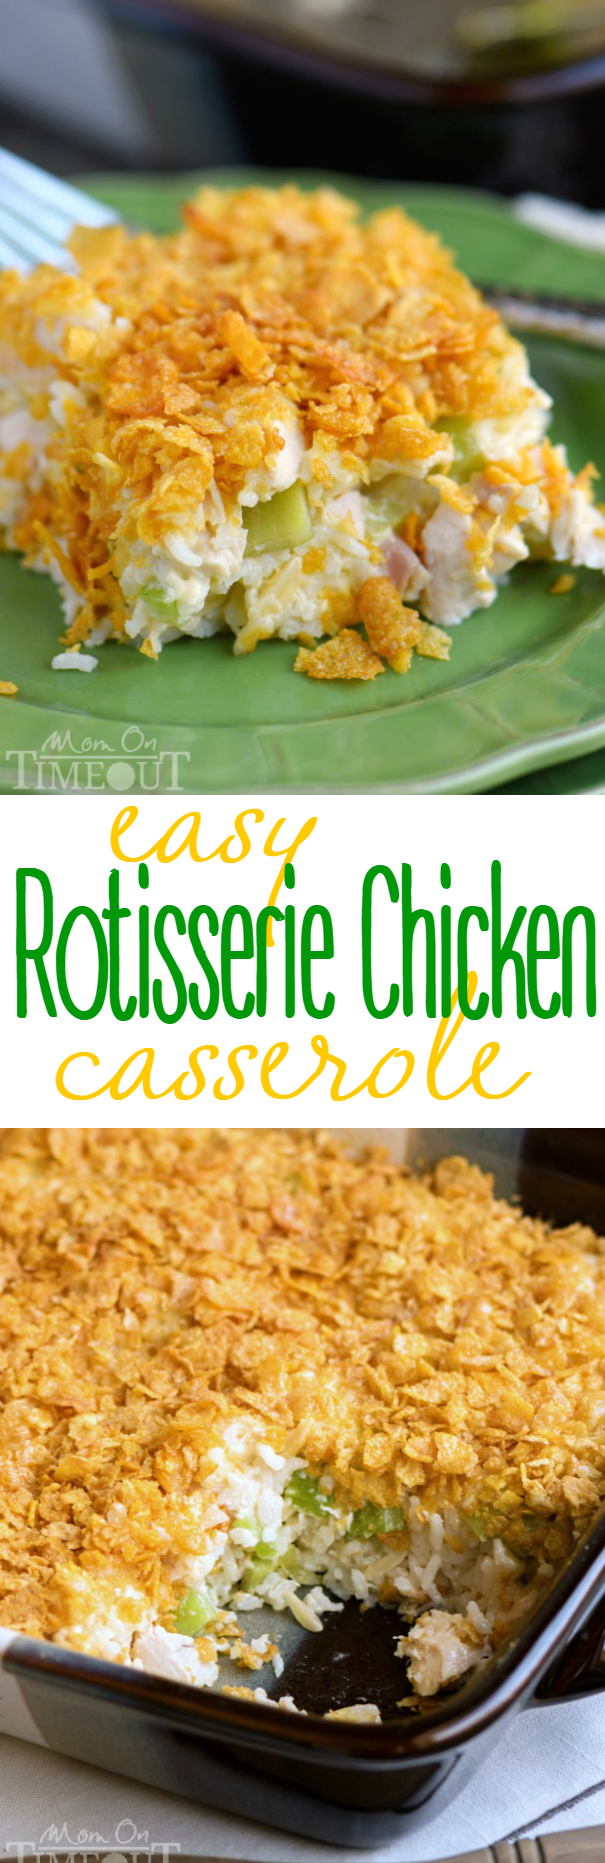 chicken rice casserole with rotisserie chicken in baking dish